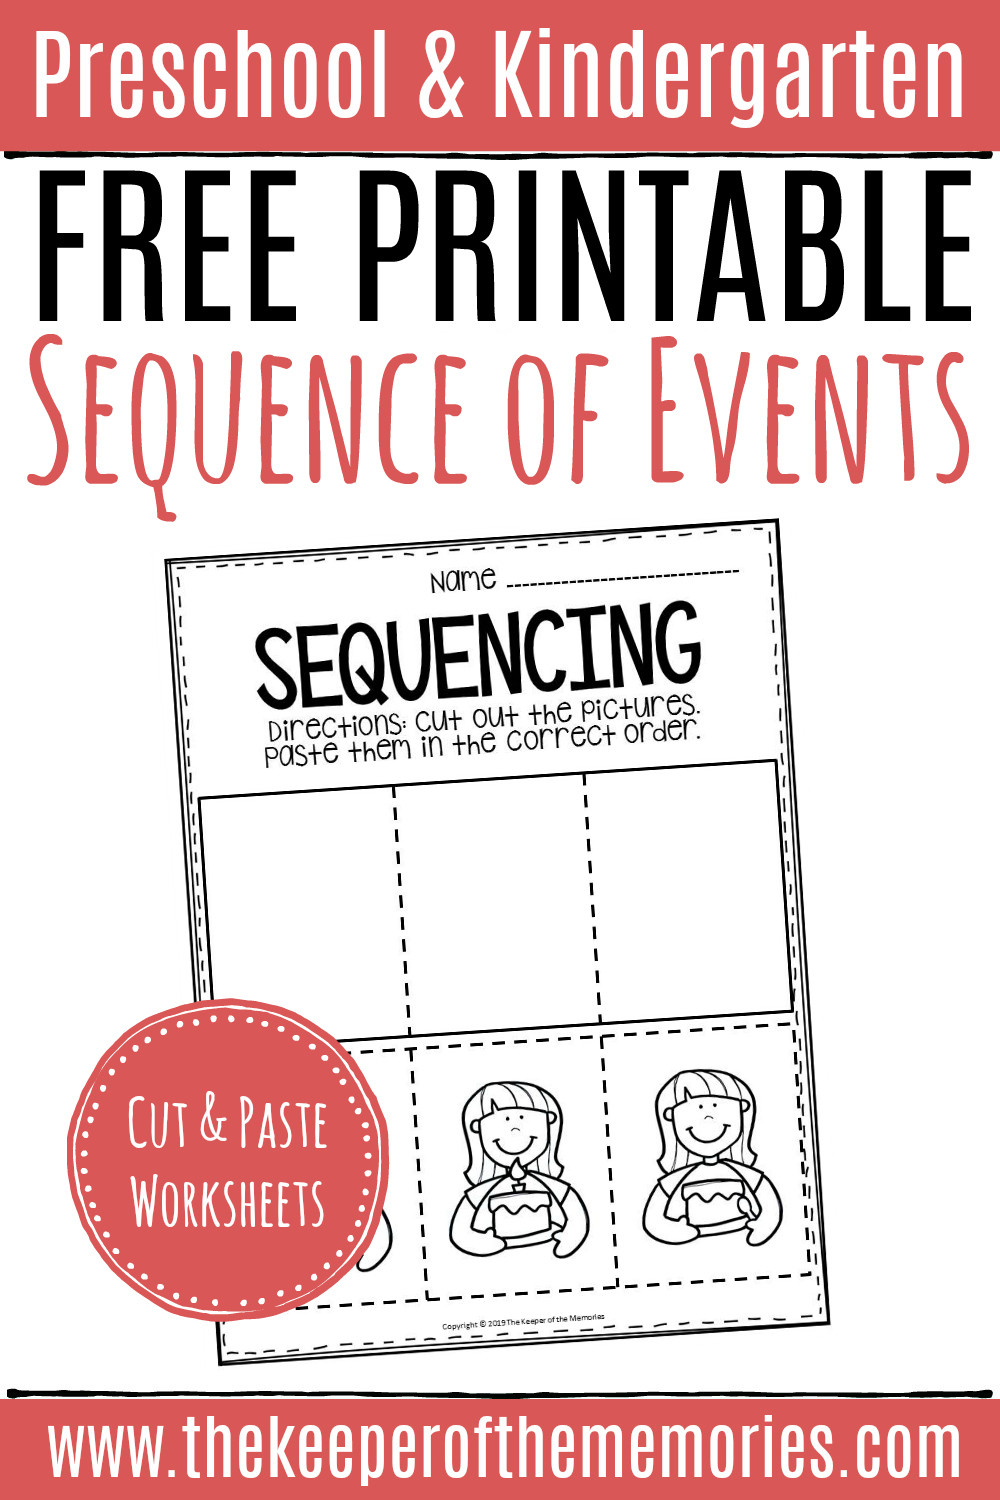 Sequencing events Worksheets Grade 6 Free Printable Sequence events Worksheets Sequencing